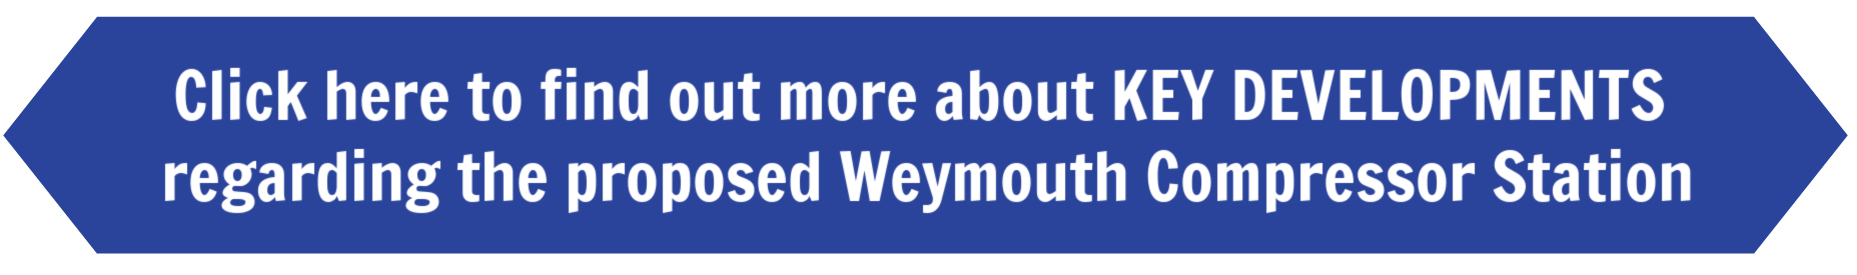 WEYMOUTH_Key_Developments_Button.png